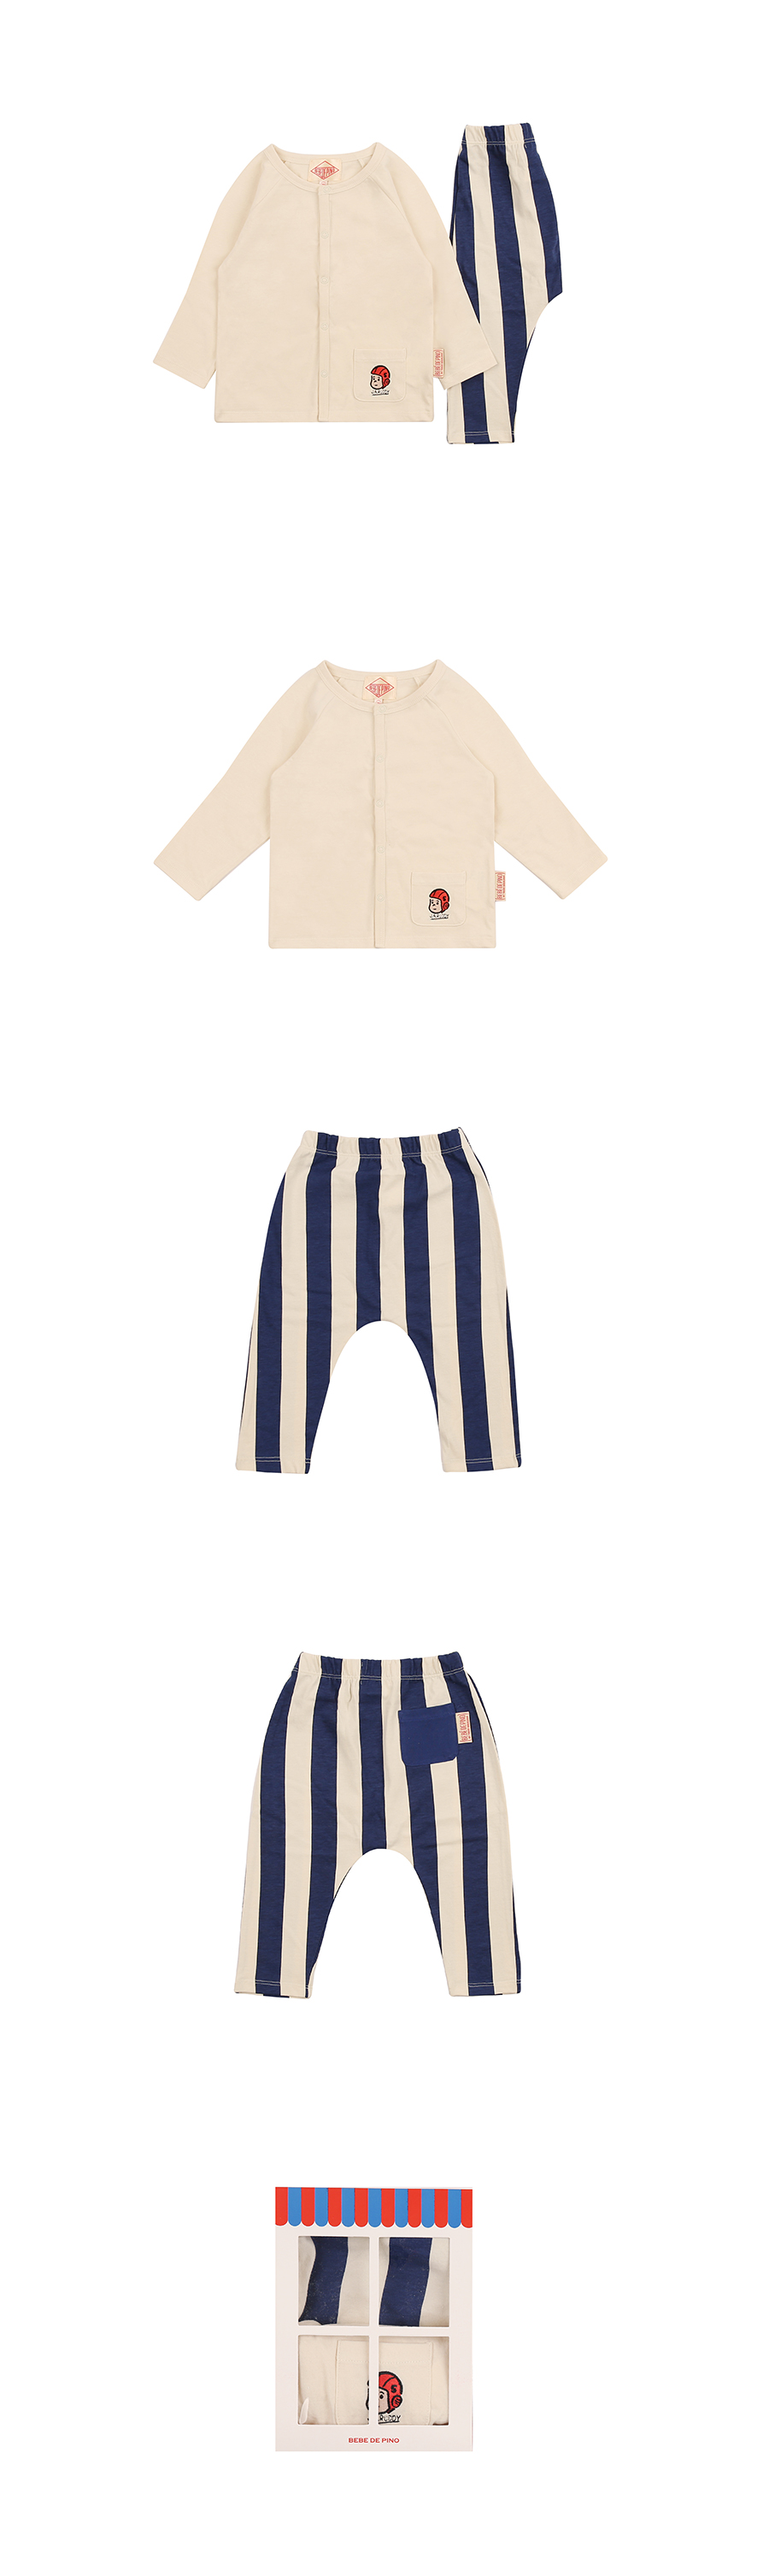 Ruddy stripe baby homewear set 상세 이미지